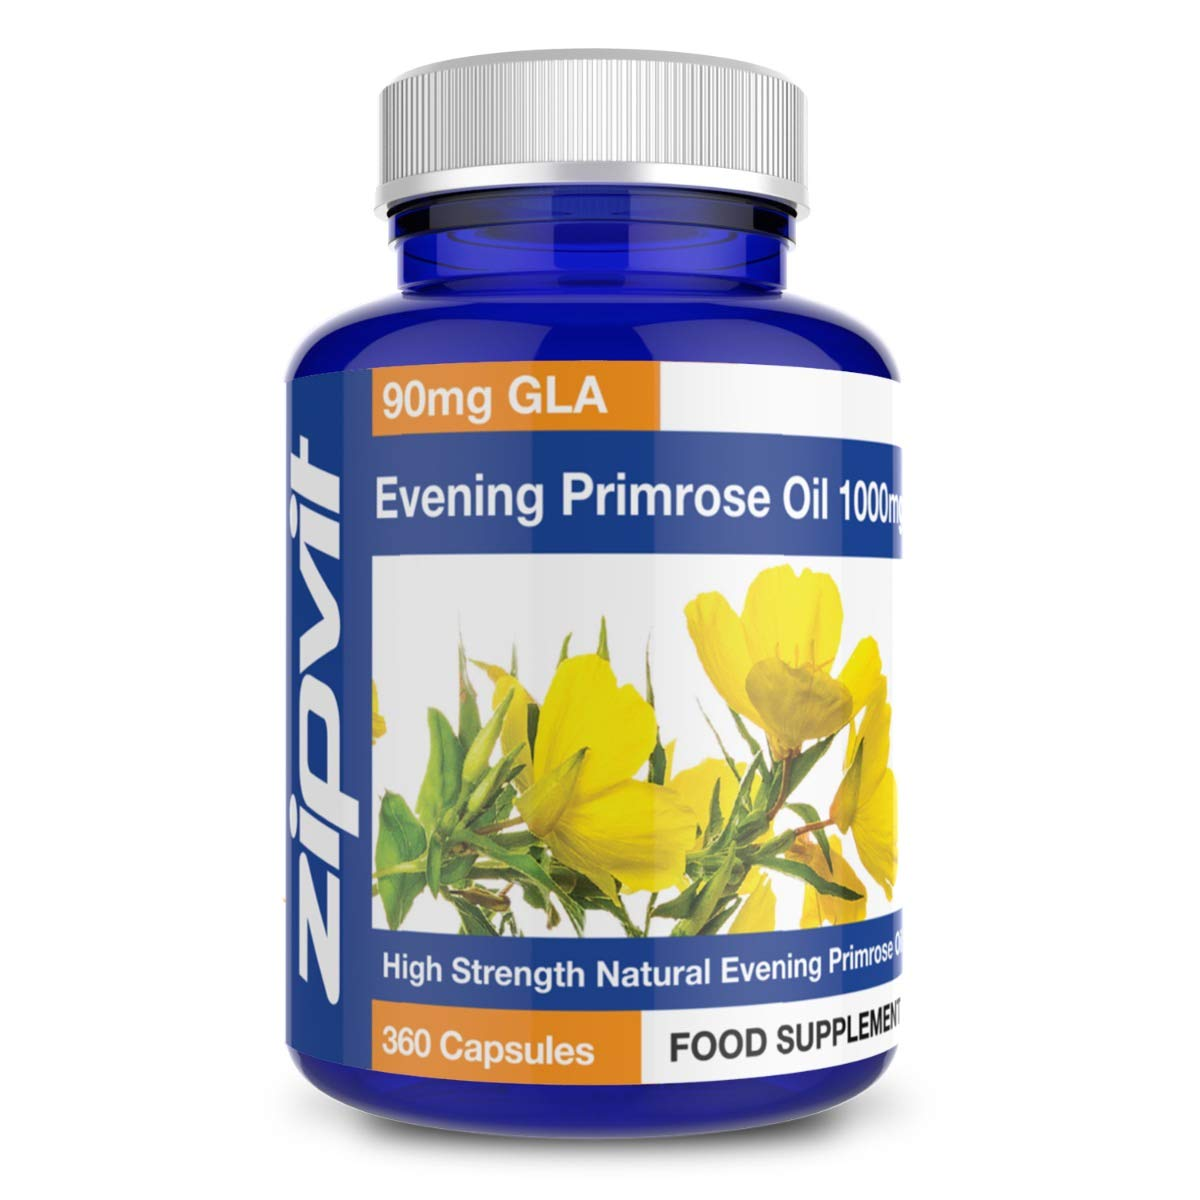 Evening Primrose Oil 1000mg. 360 Capsules. Omega 6 90mg. 12 Months Supply.